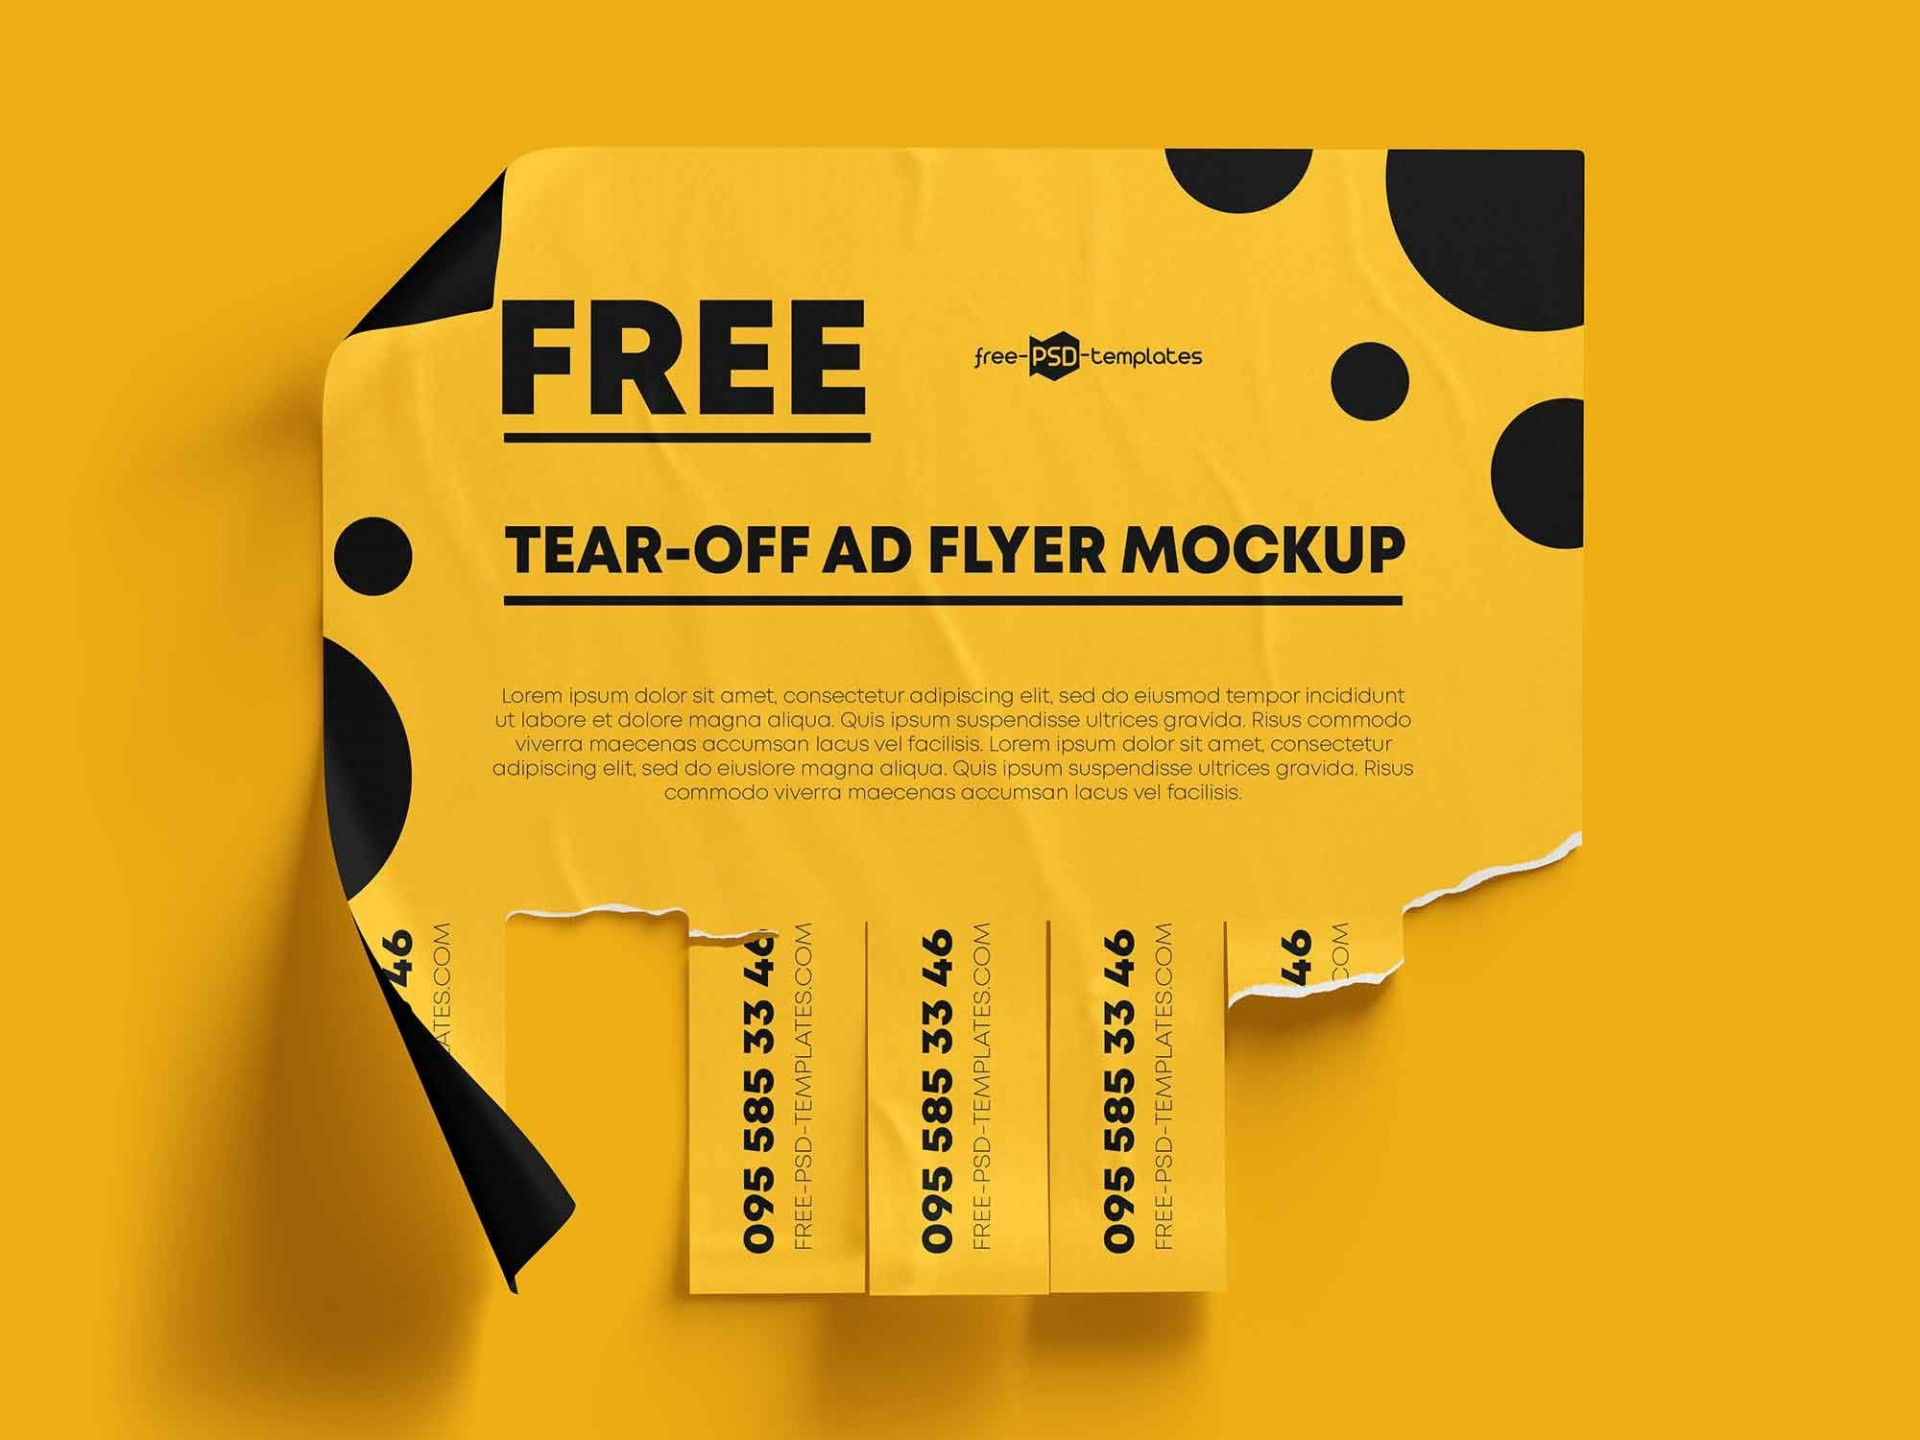 006 Impressive Free Tear Off Flyer Template Inspiration  Tear-off For Microsoft Word Printable With Tab1920